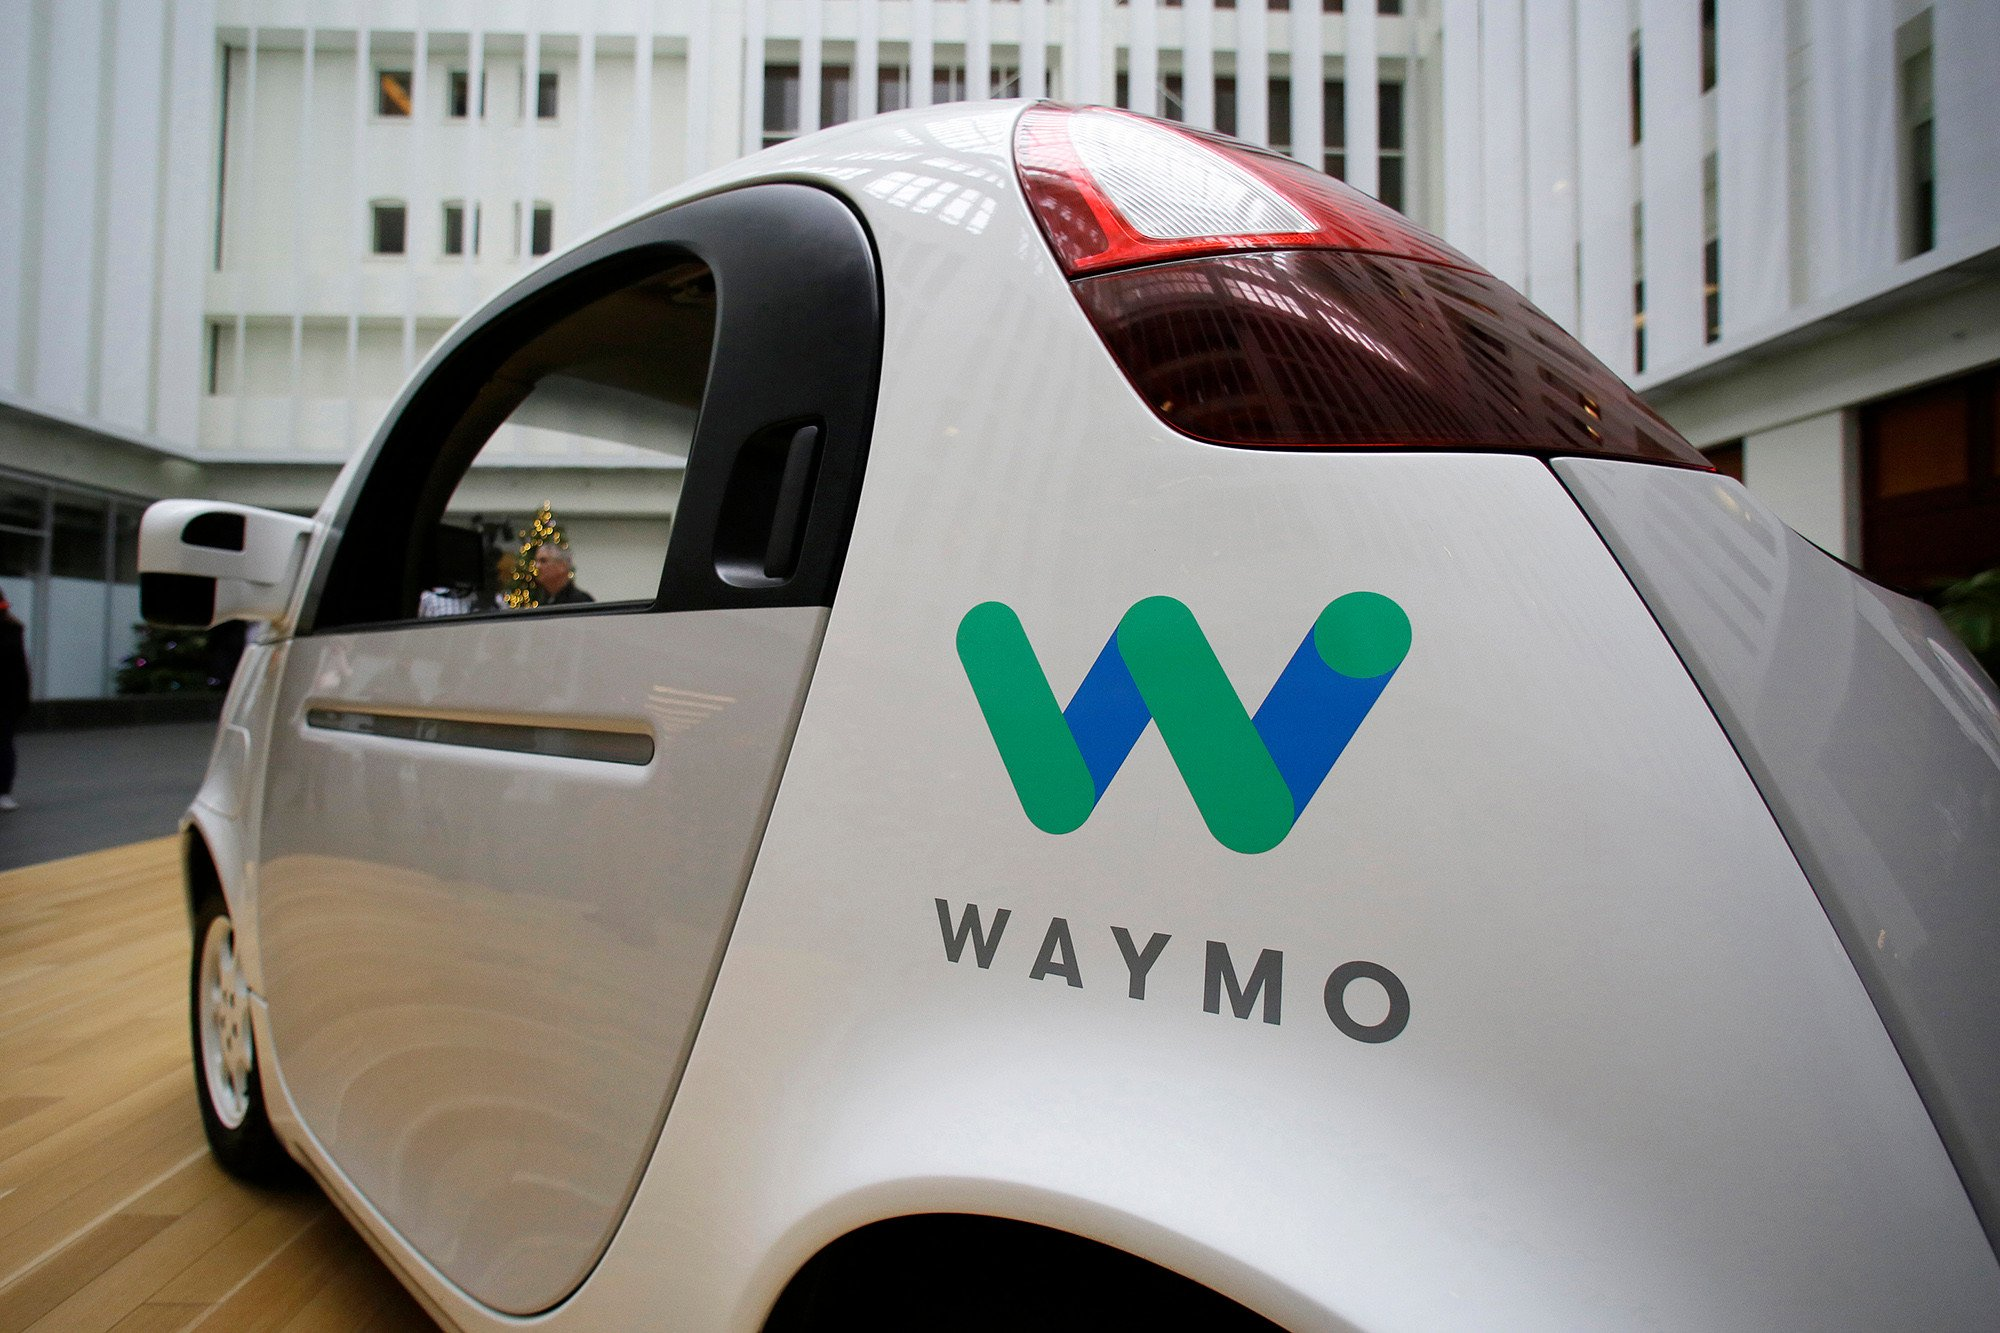 Waymo moves one step closer to officially launching